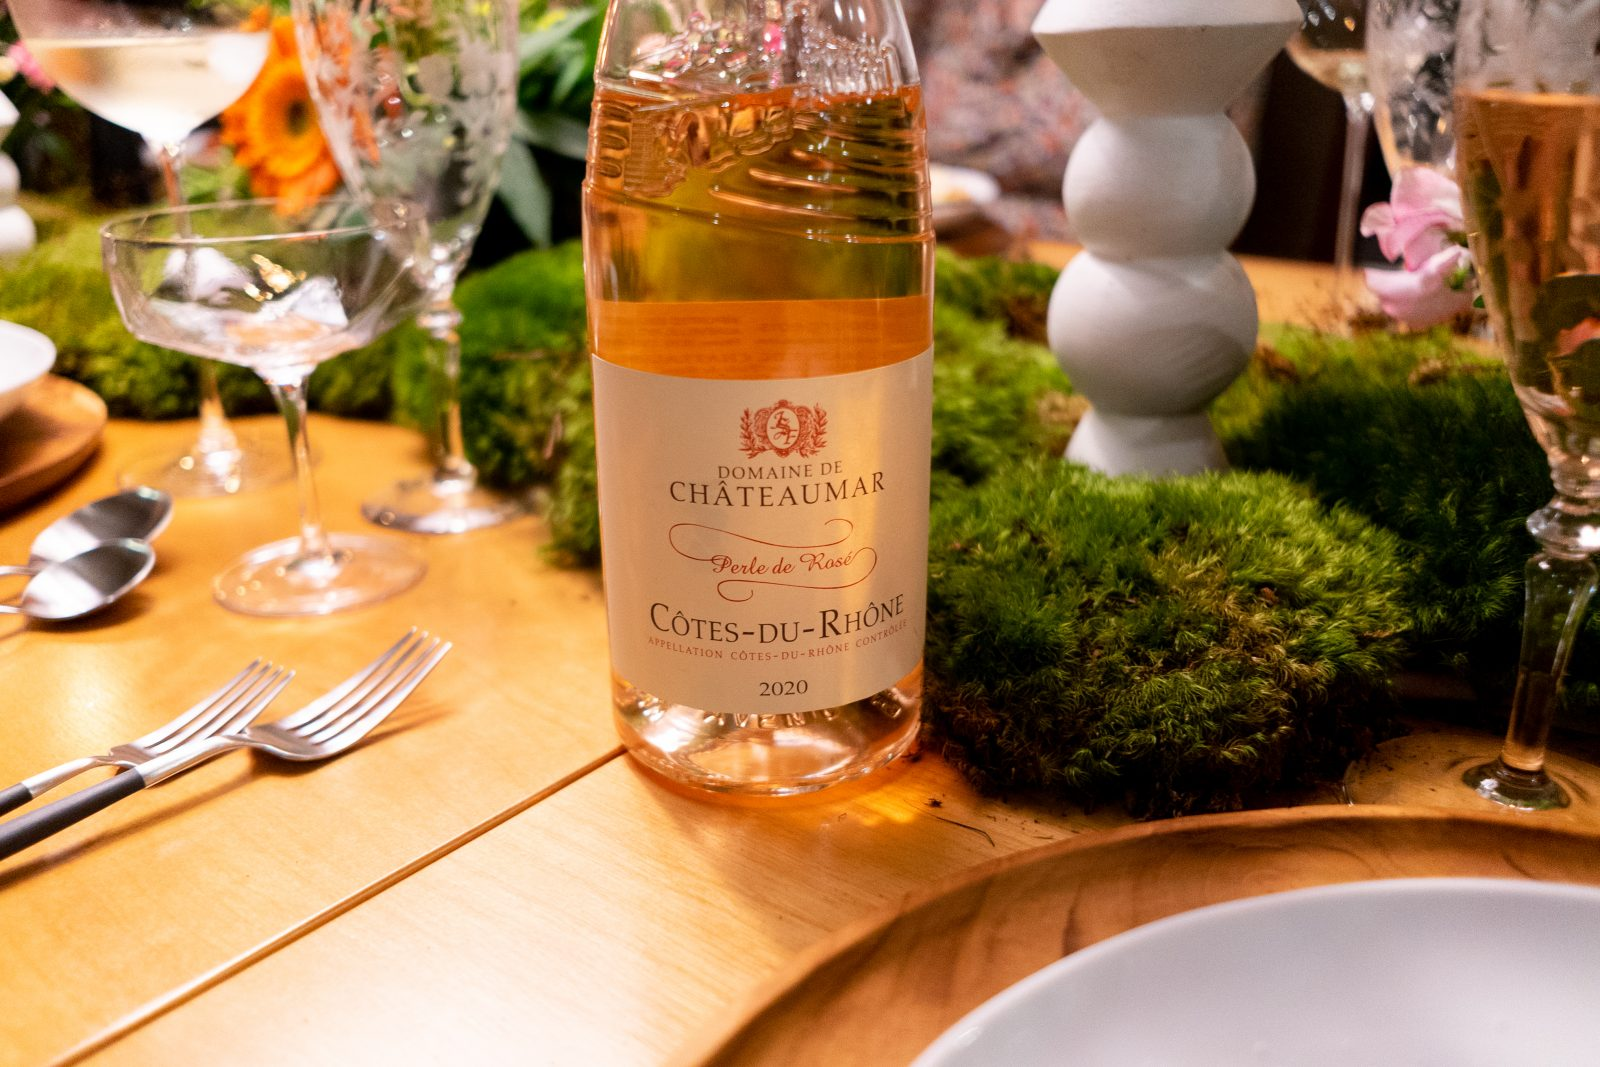 domaine de chateaumar at a dinner setting